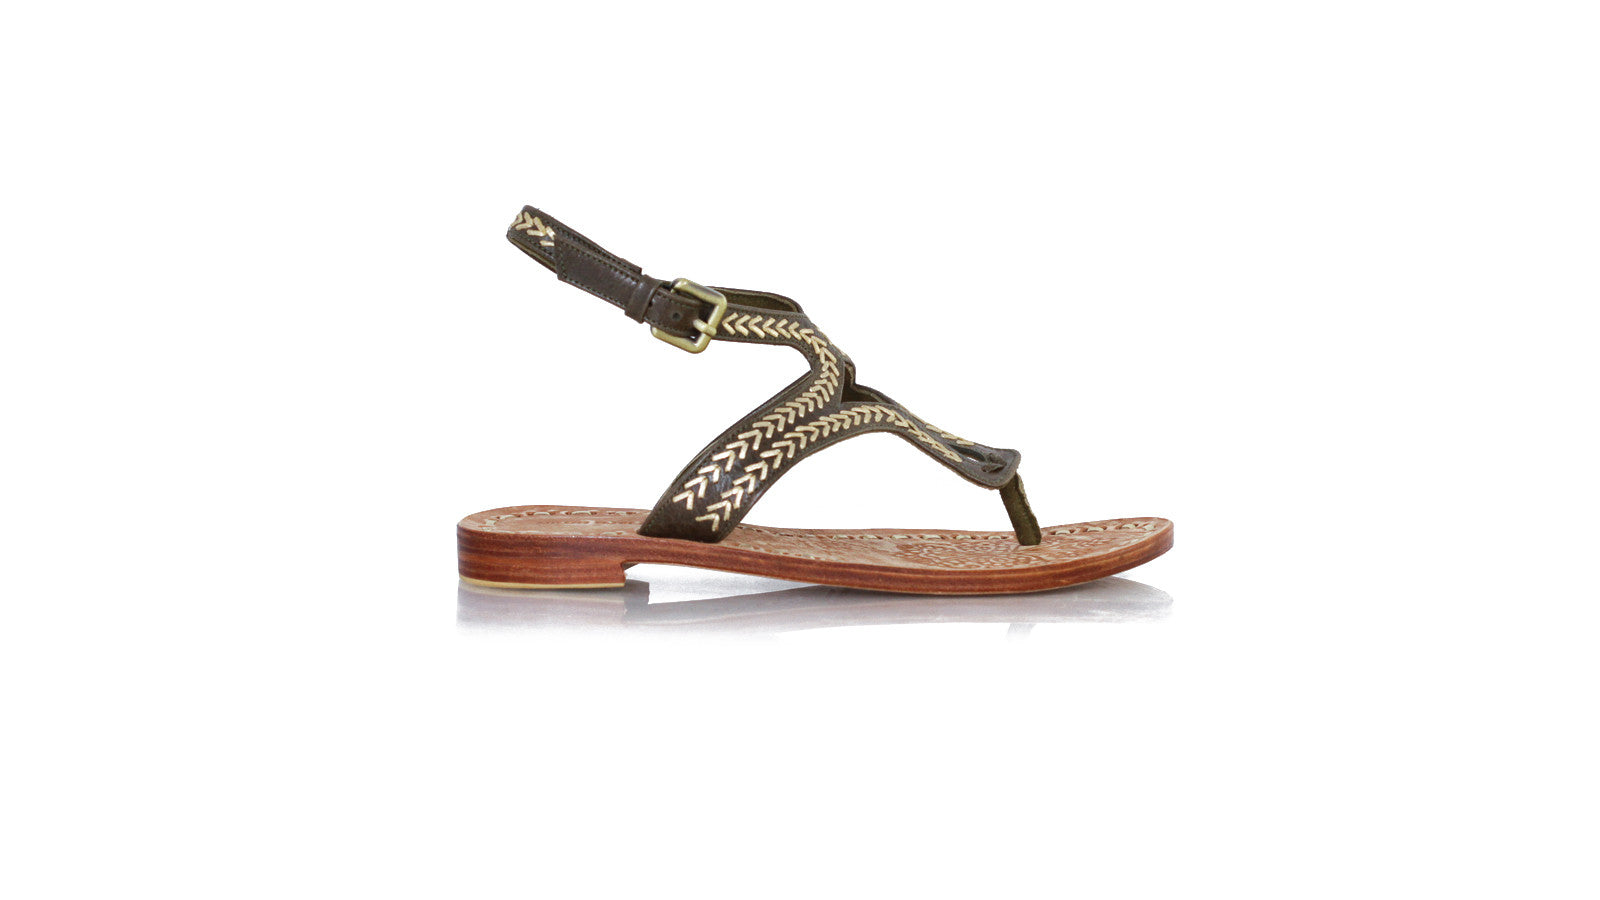 eebad5a179d2 Leather-shoes-Agra Sulam 20mm Flats Dark Olive - Gold-sandals flat-